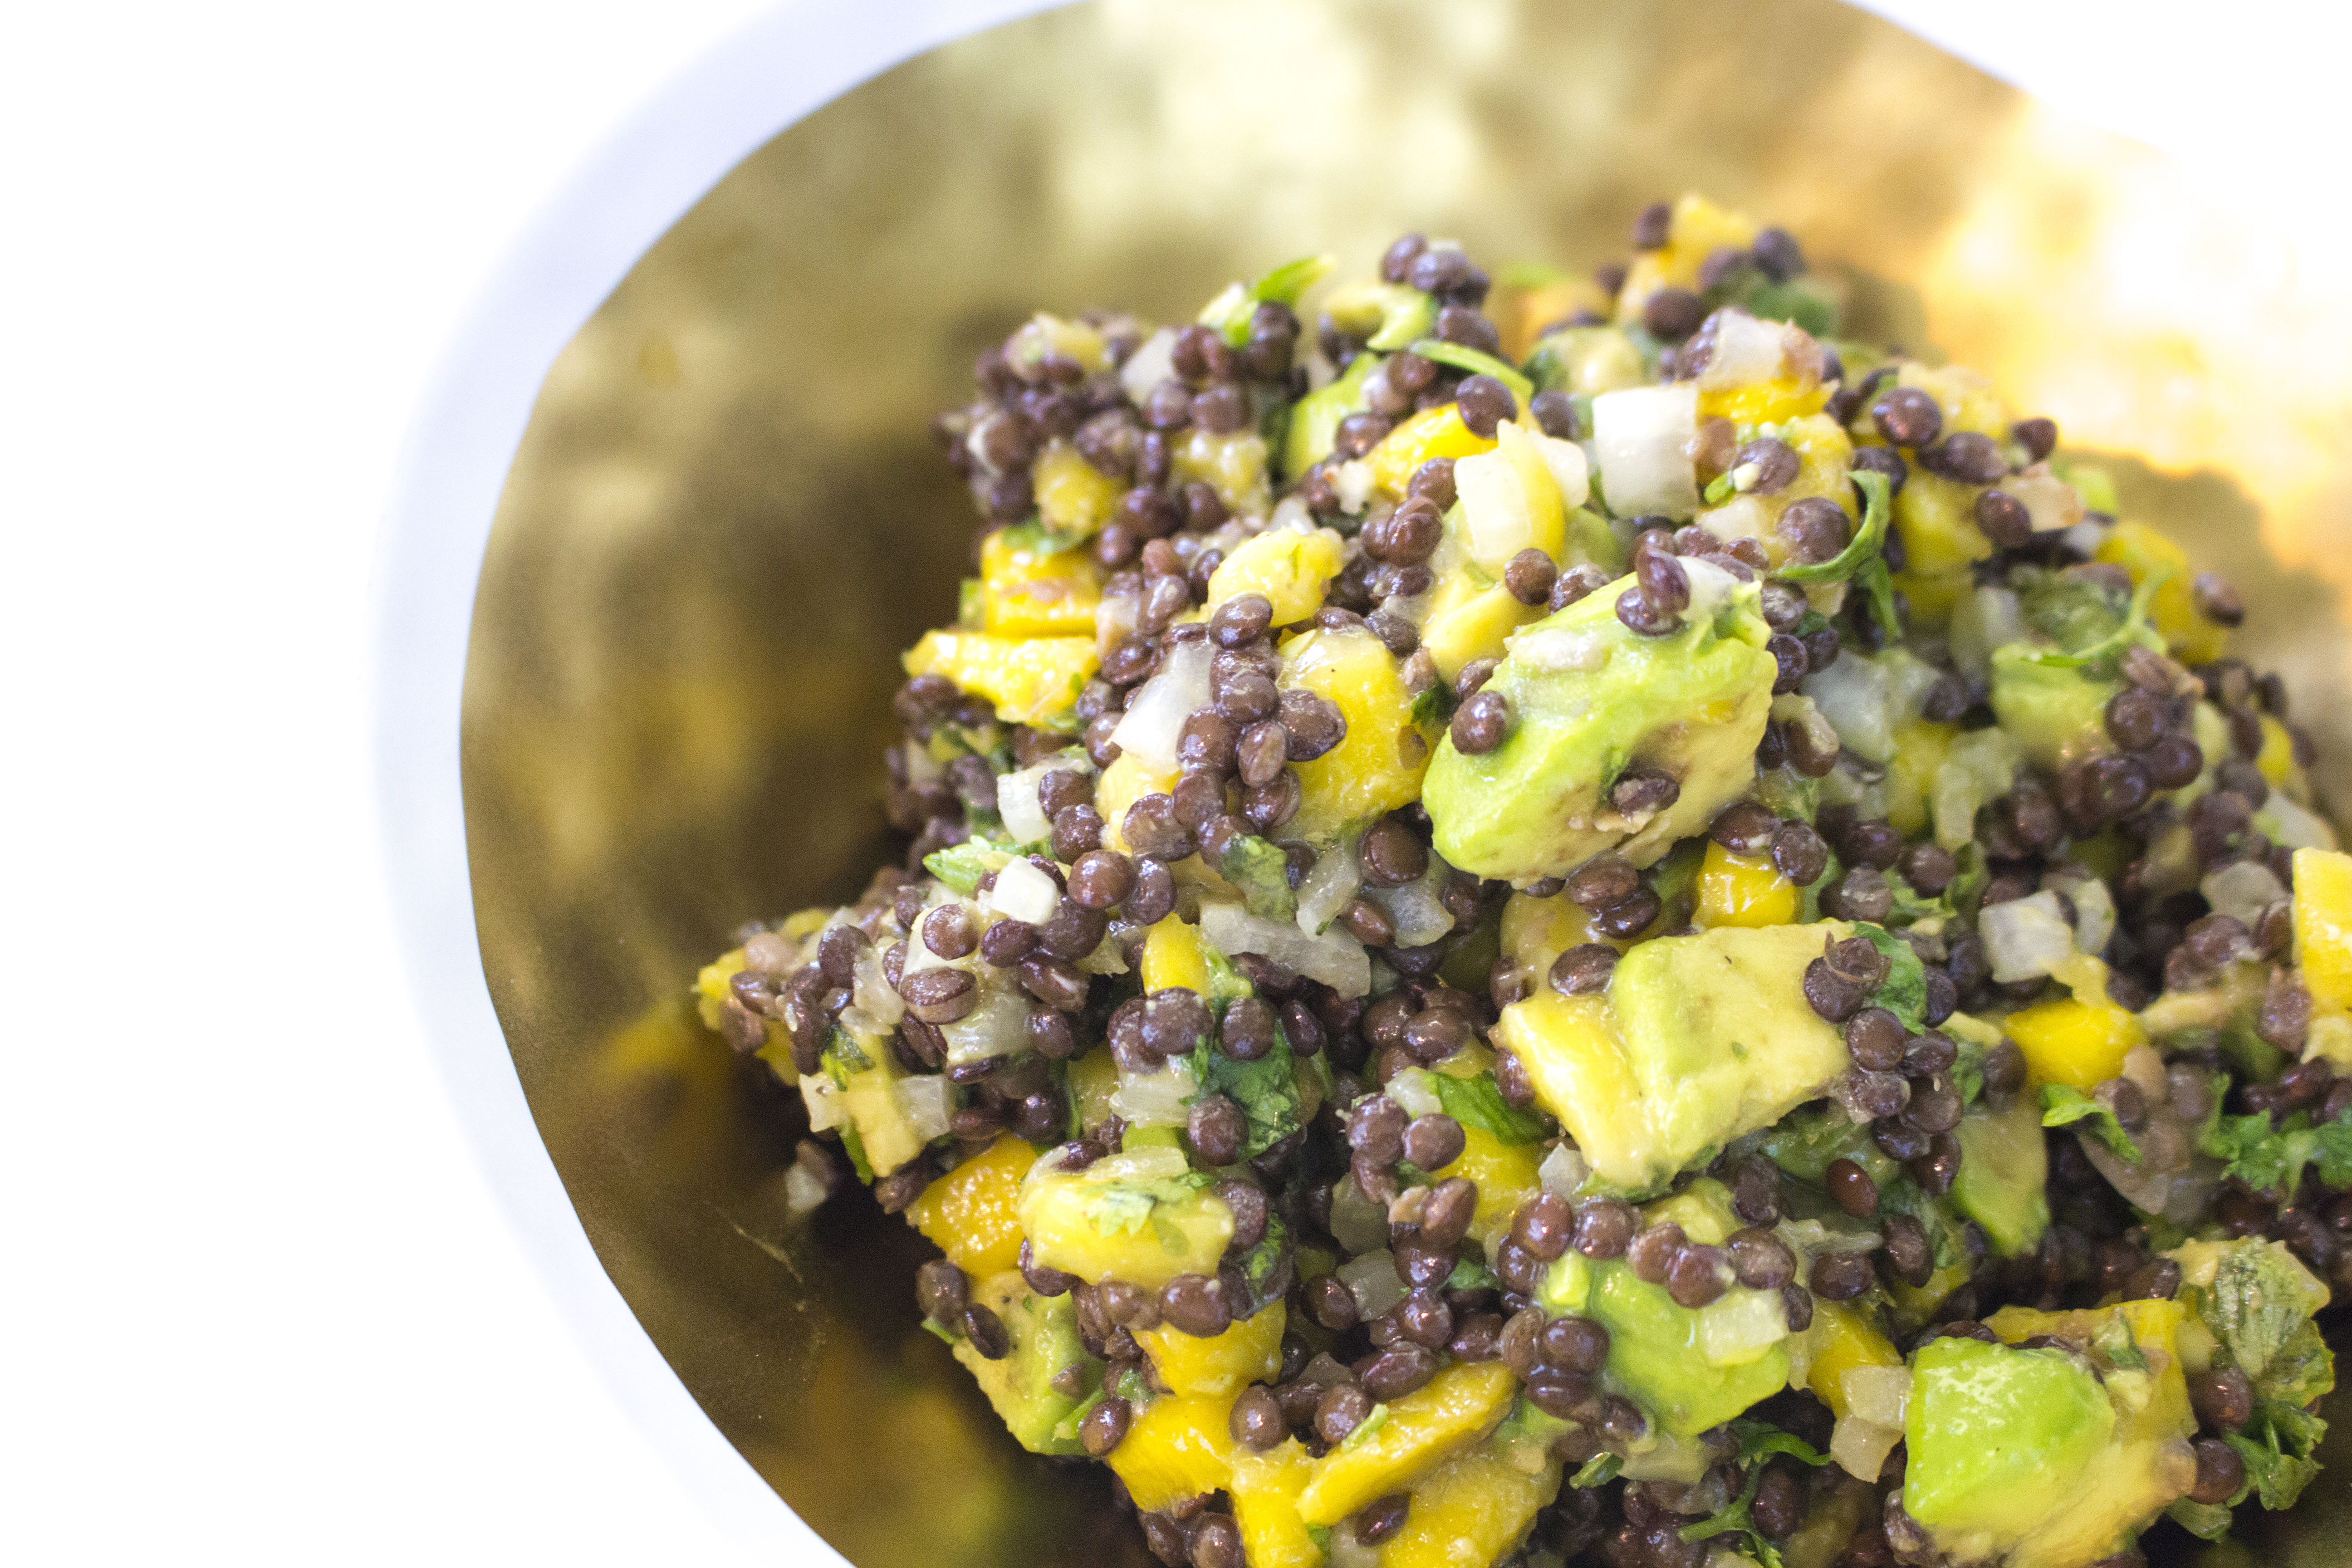 This Mango & Avocado Lentil Salad is one of my favs! Perfect for a meatless meal that is full of fiber and protein.... so yummy and fresh!